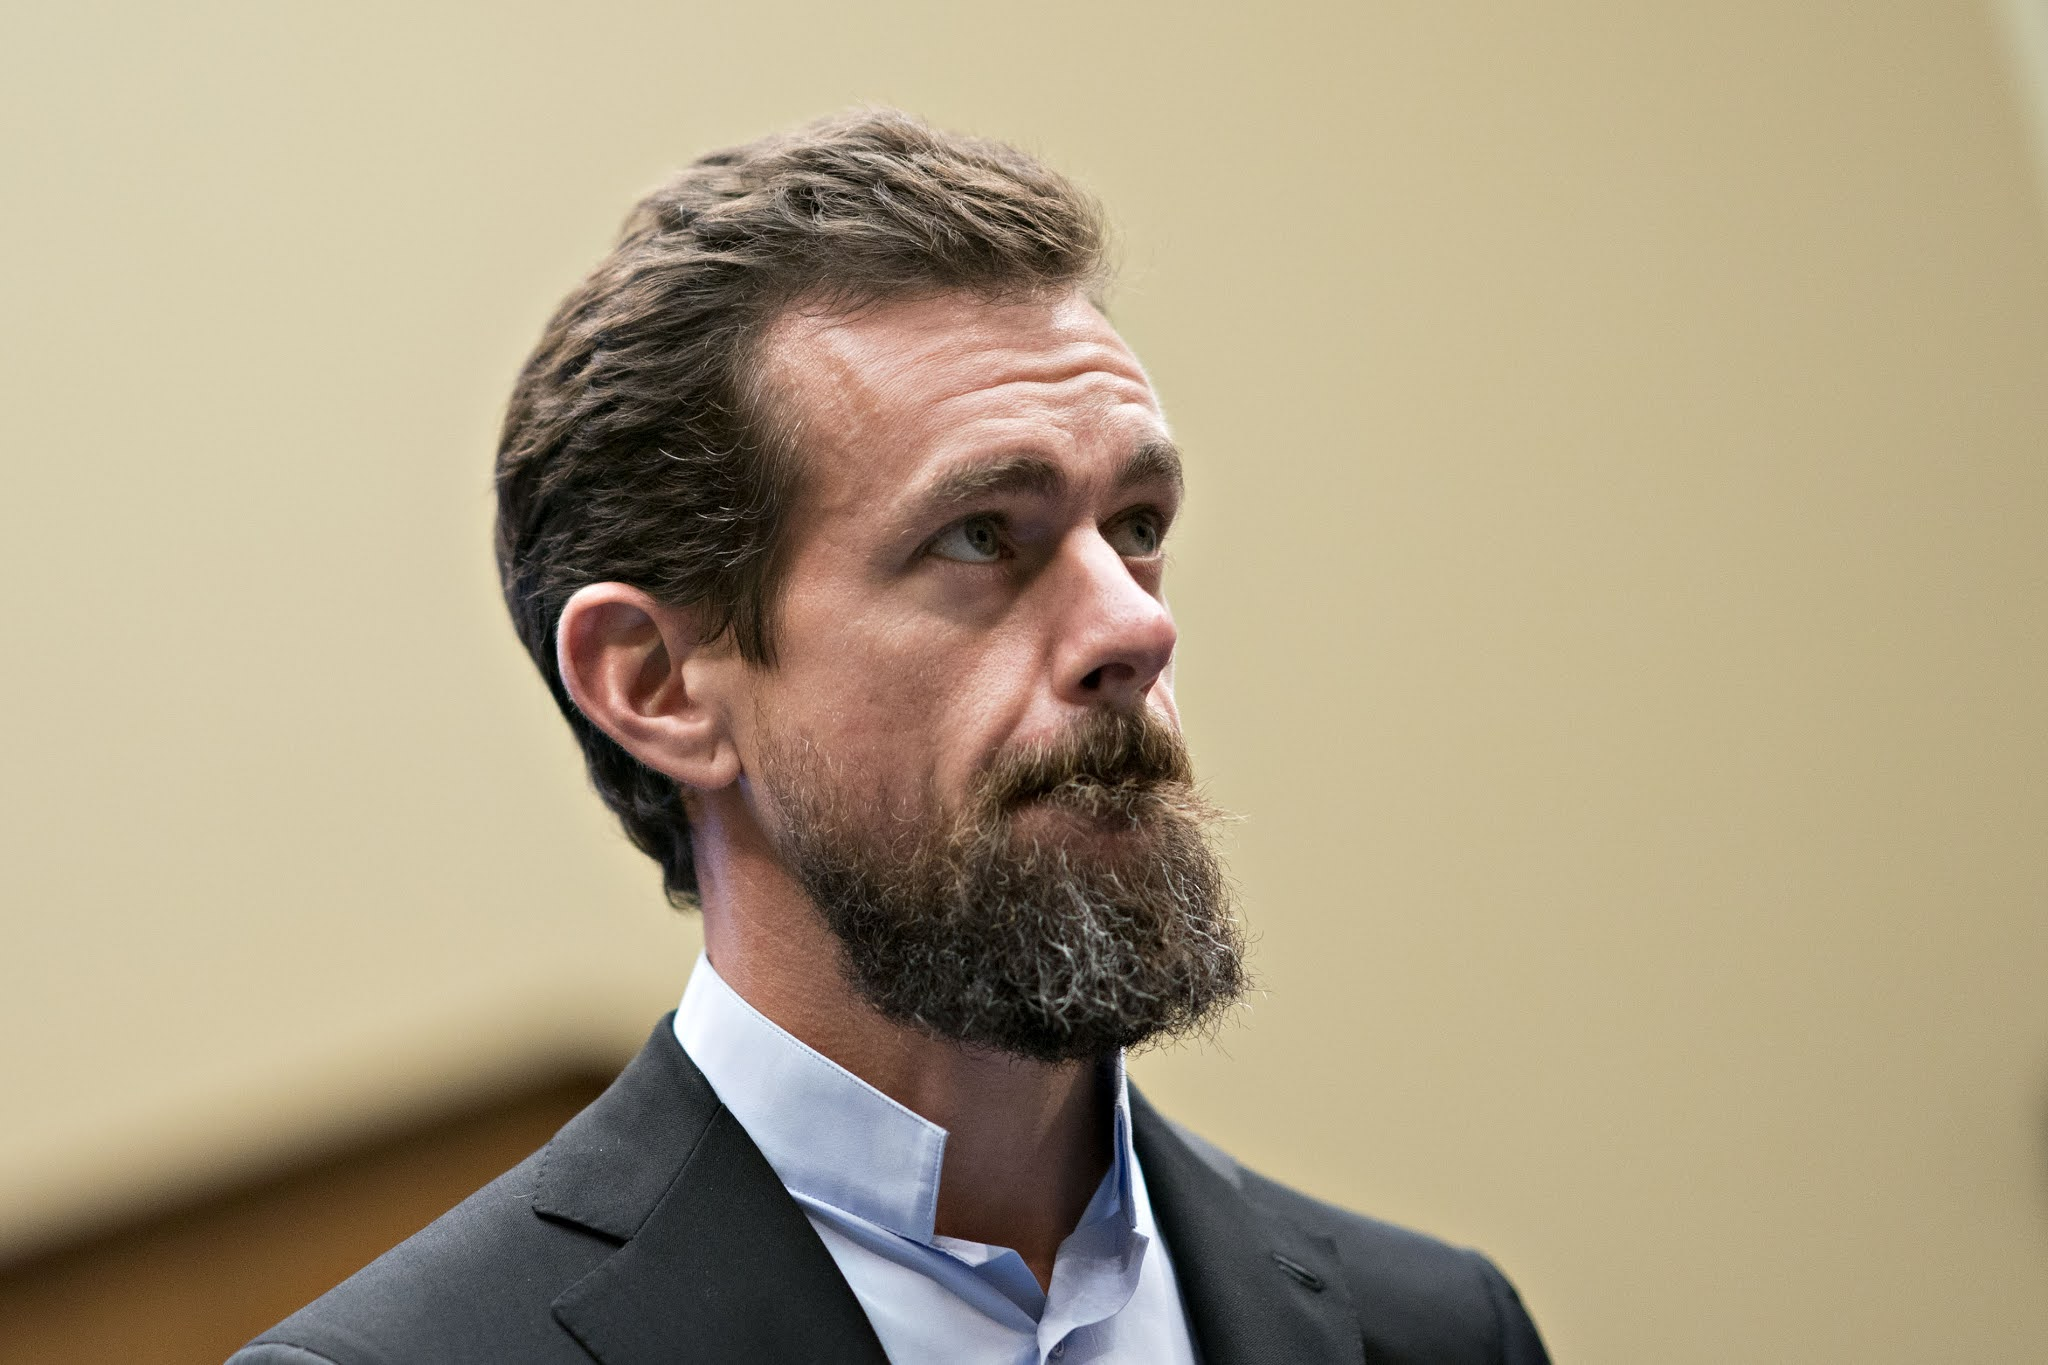 Jack Dorsey's first tweet NFT Sells For $2.9 Million